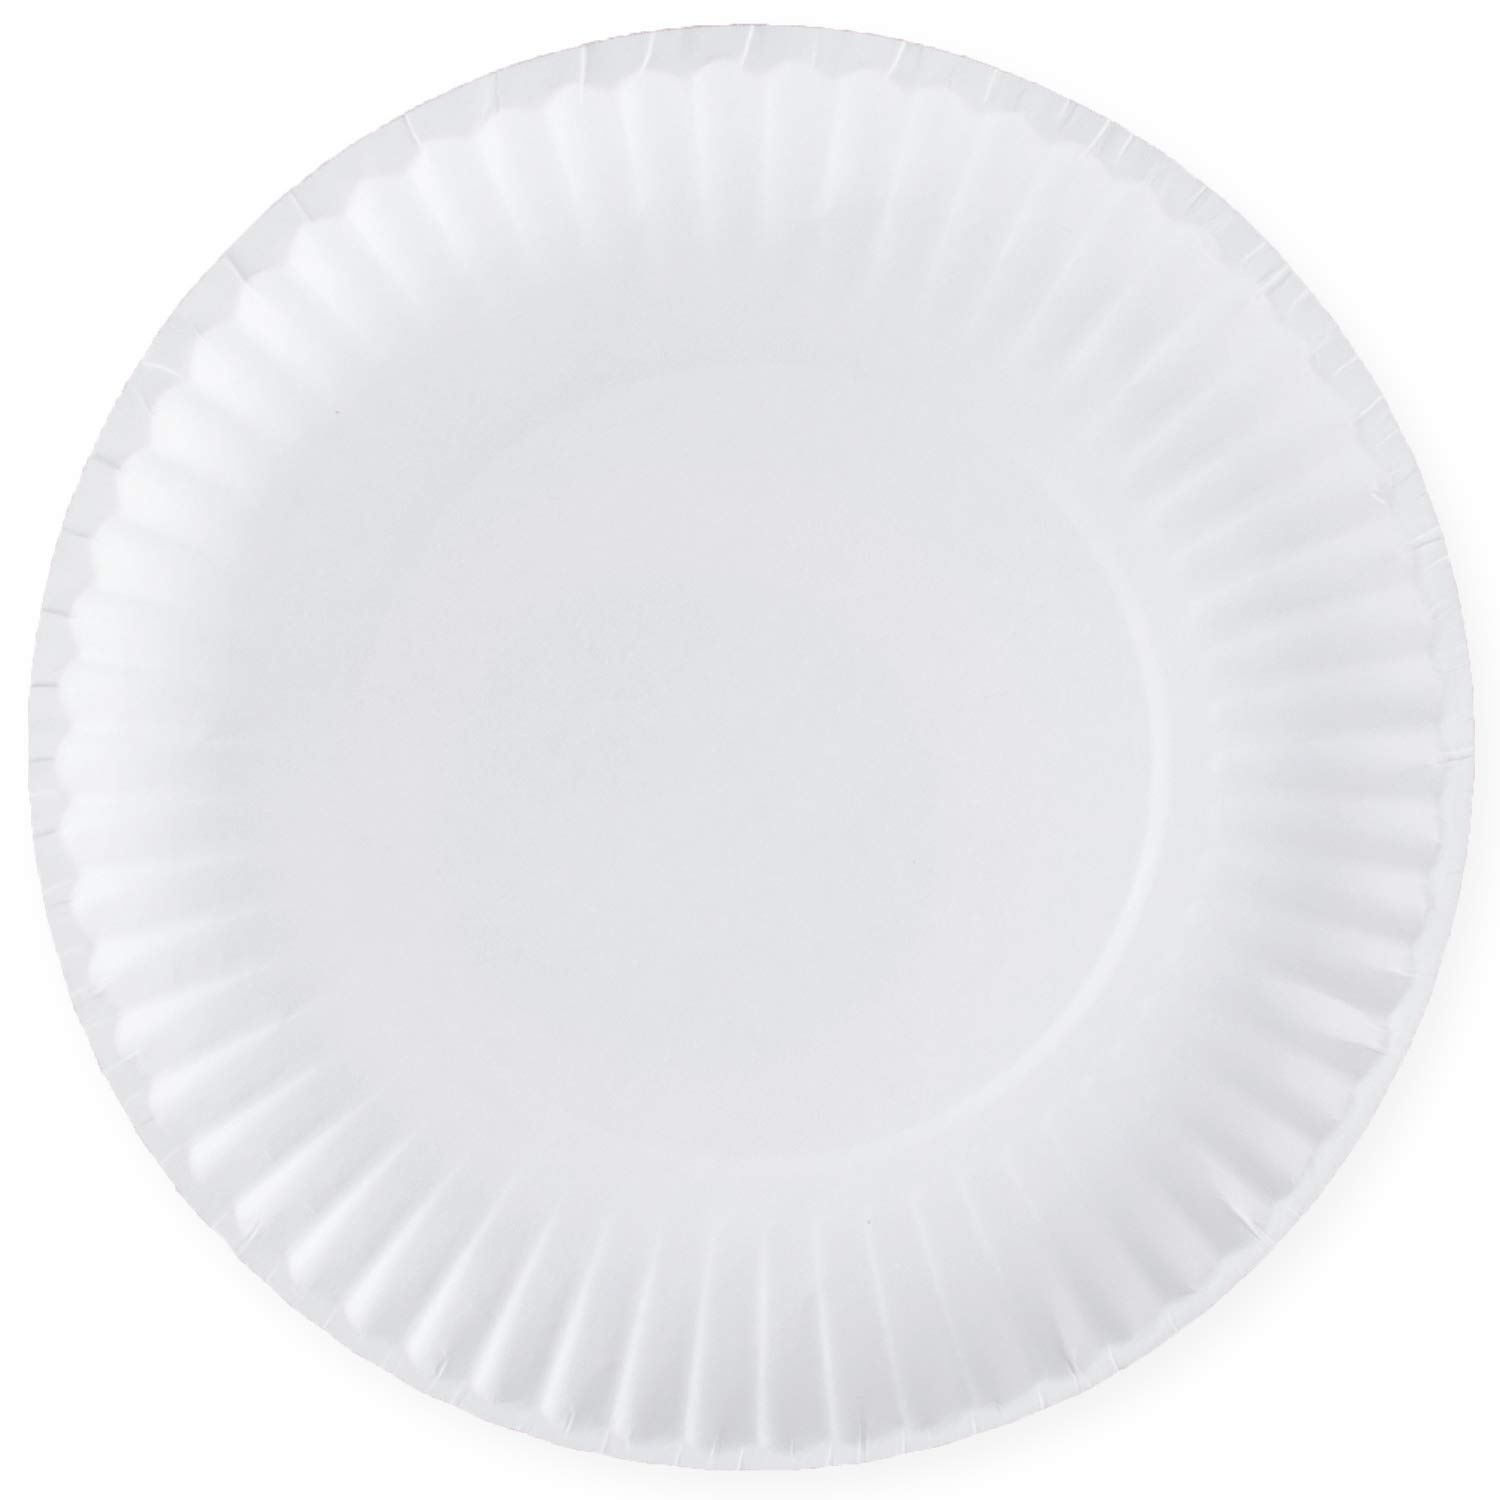 [300 Pack] Bulk Disposable White Uncoated Paper Plates, 9 Inch Large by Comfy Package